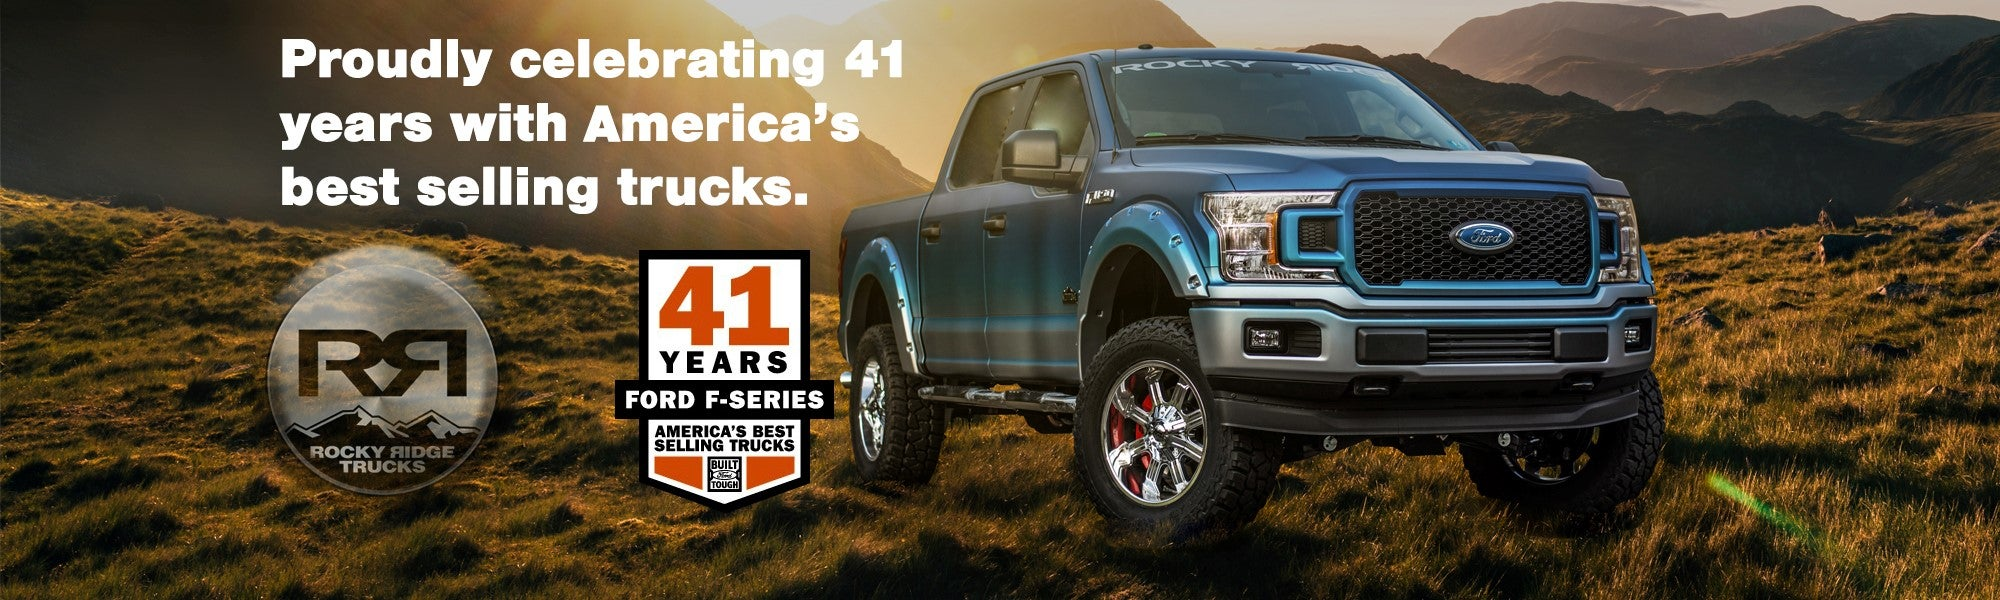 Rocky Ridge Lifted Trucks For Sale In Fort Lauderdale